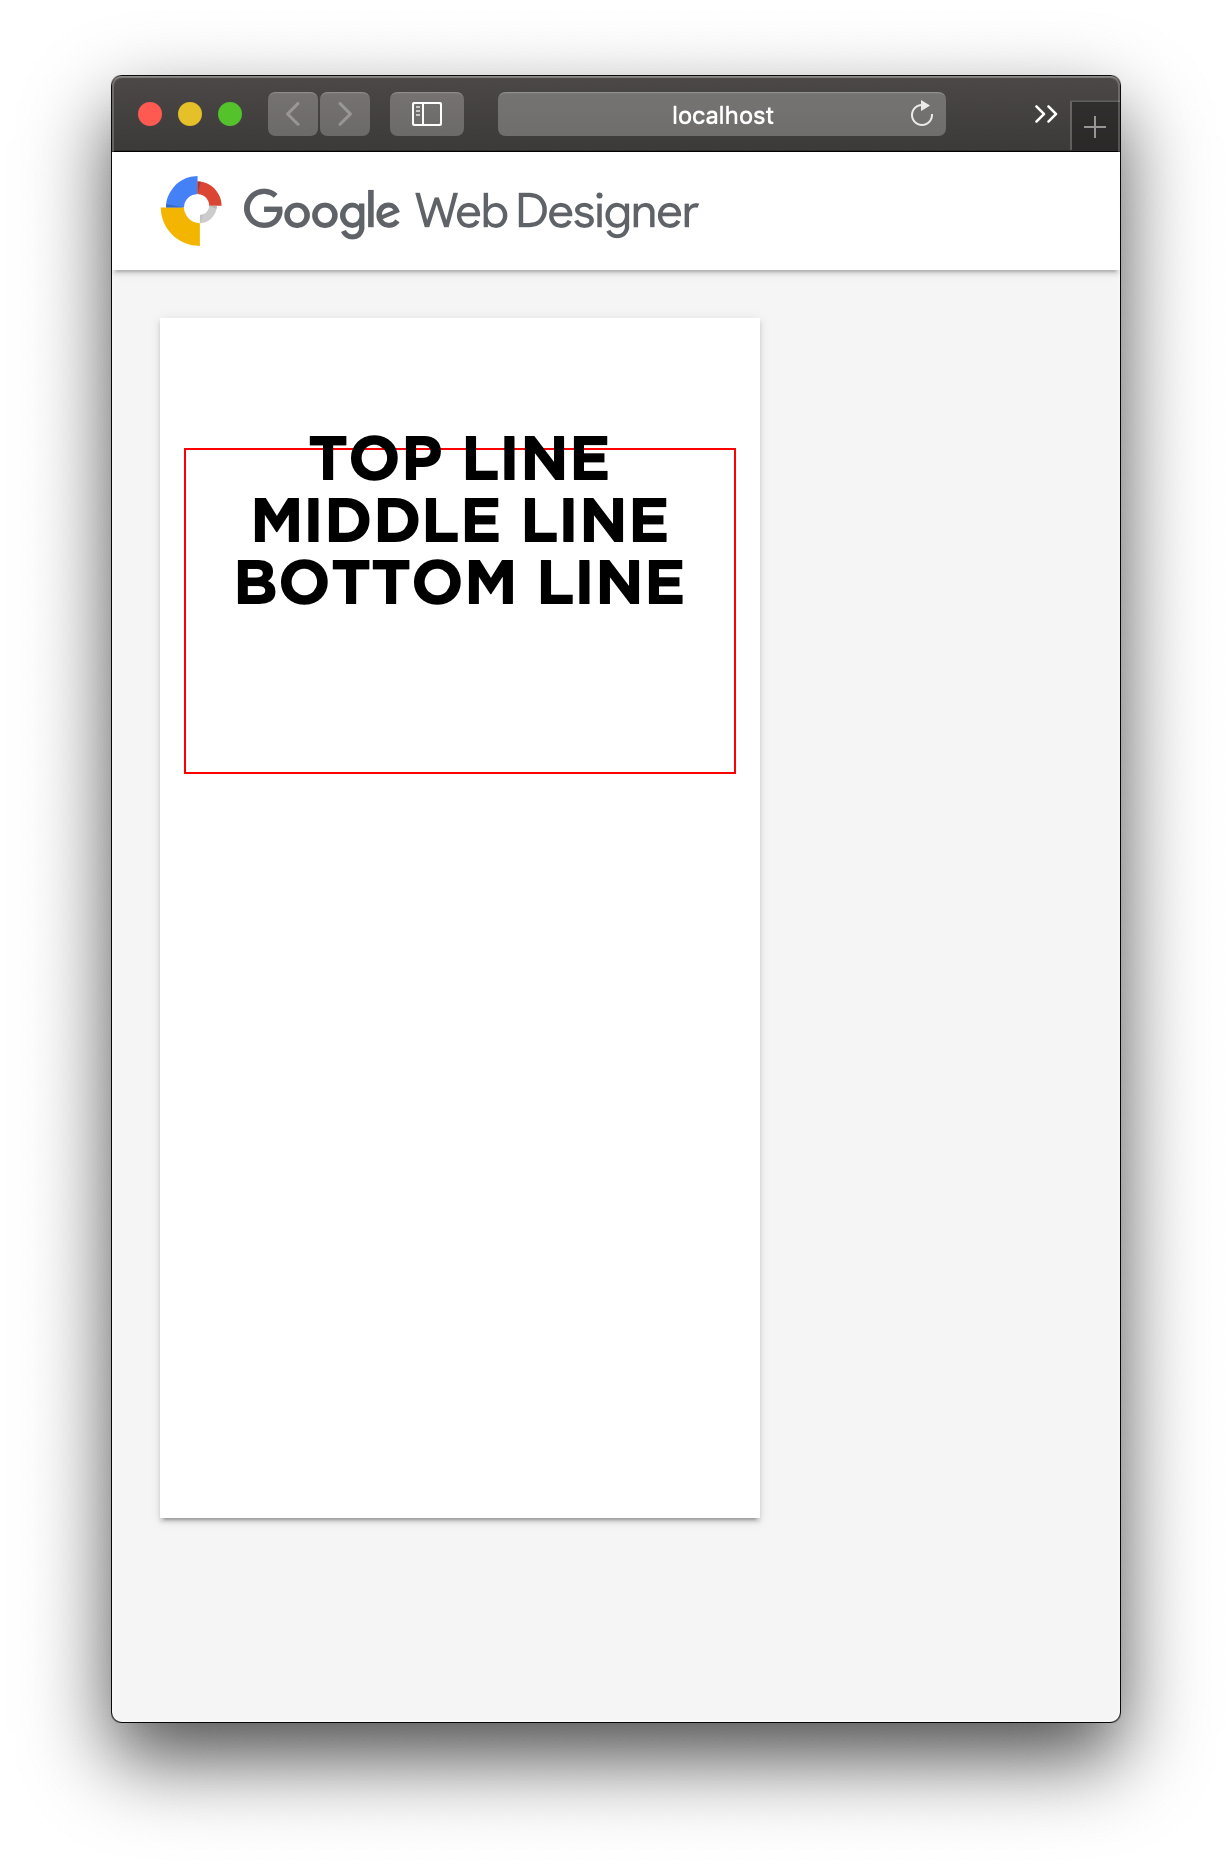 Having trouble with Gotham Bold displaying in Safari, and